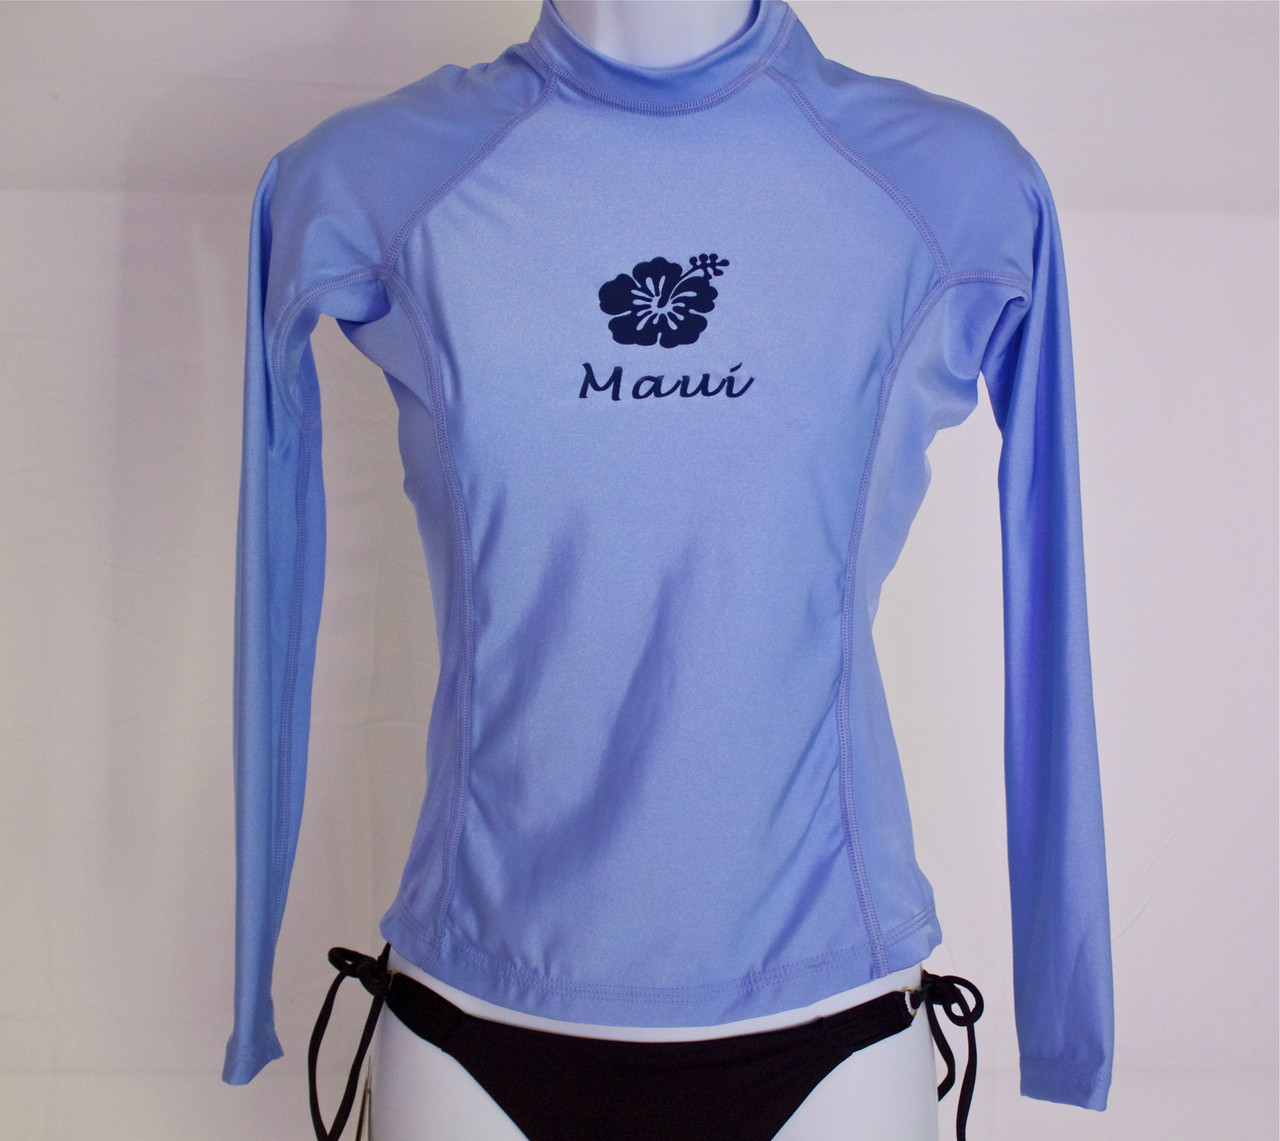 0e3268ab8 Women's Long Sleeve Light Blue Rash Guard - (808)661-7828 Maui's ...